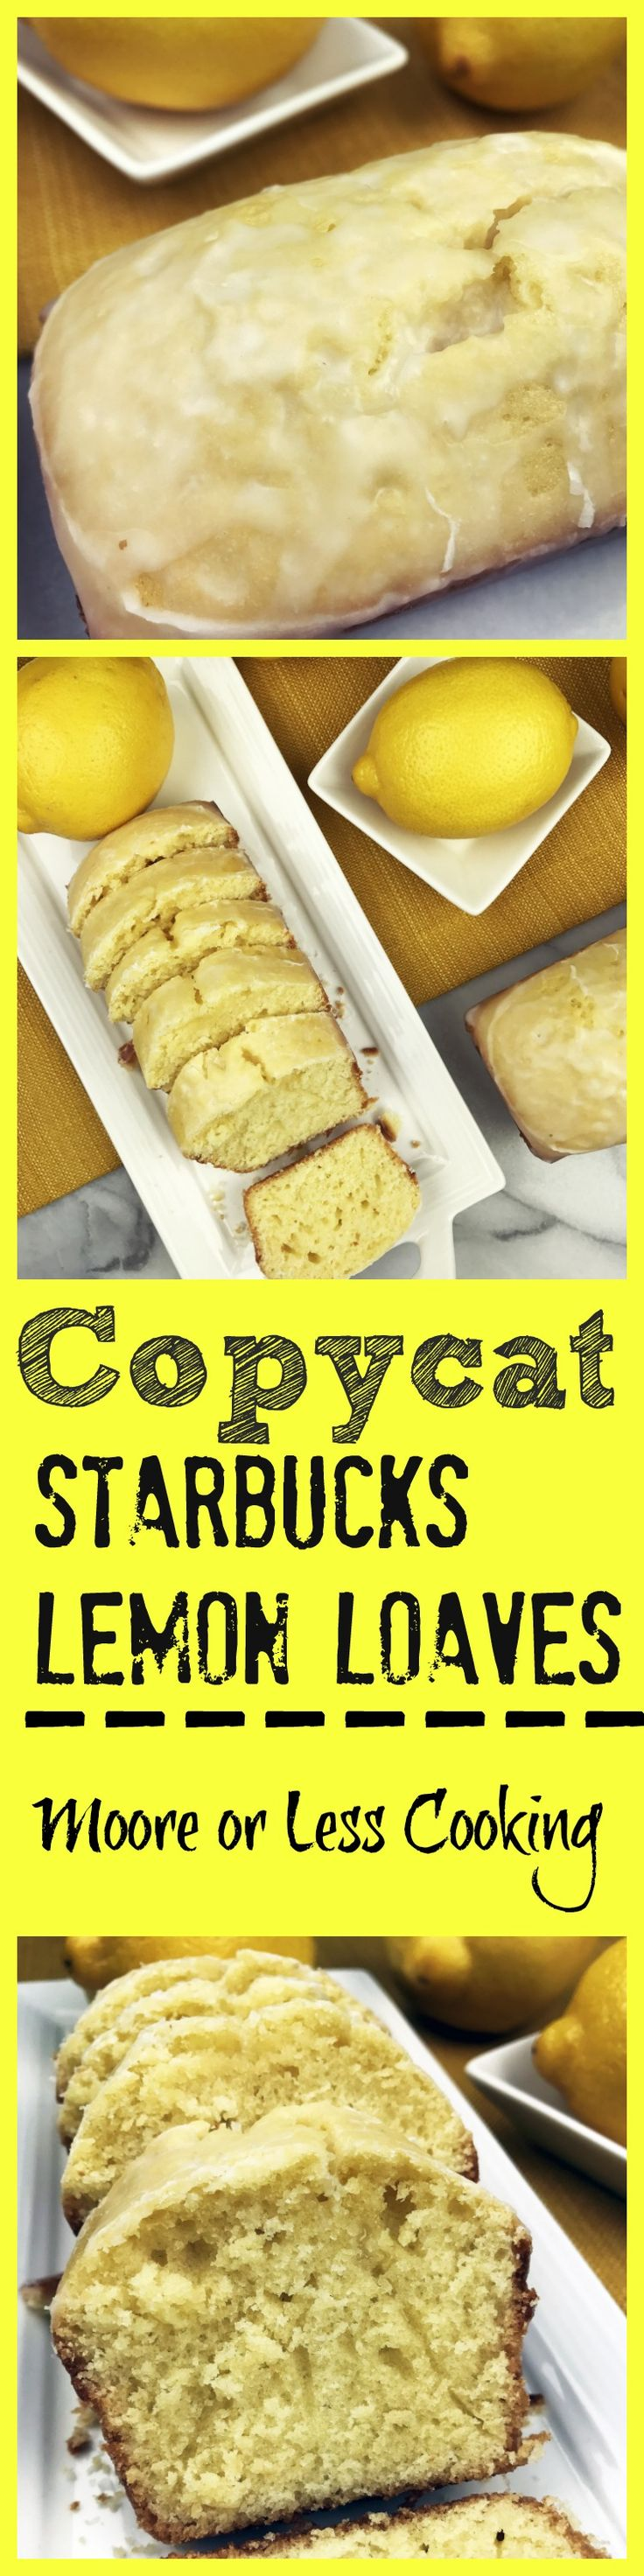 The Best Copycat Starbucks Lemon Loaves!! I think this is even better than the Starbucks lemon loaf! So moist and full of lemon flavor and a simple glaze on top makes this absolutely delicious!